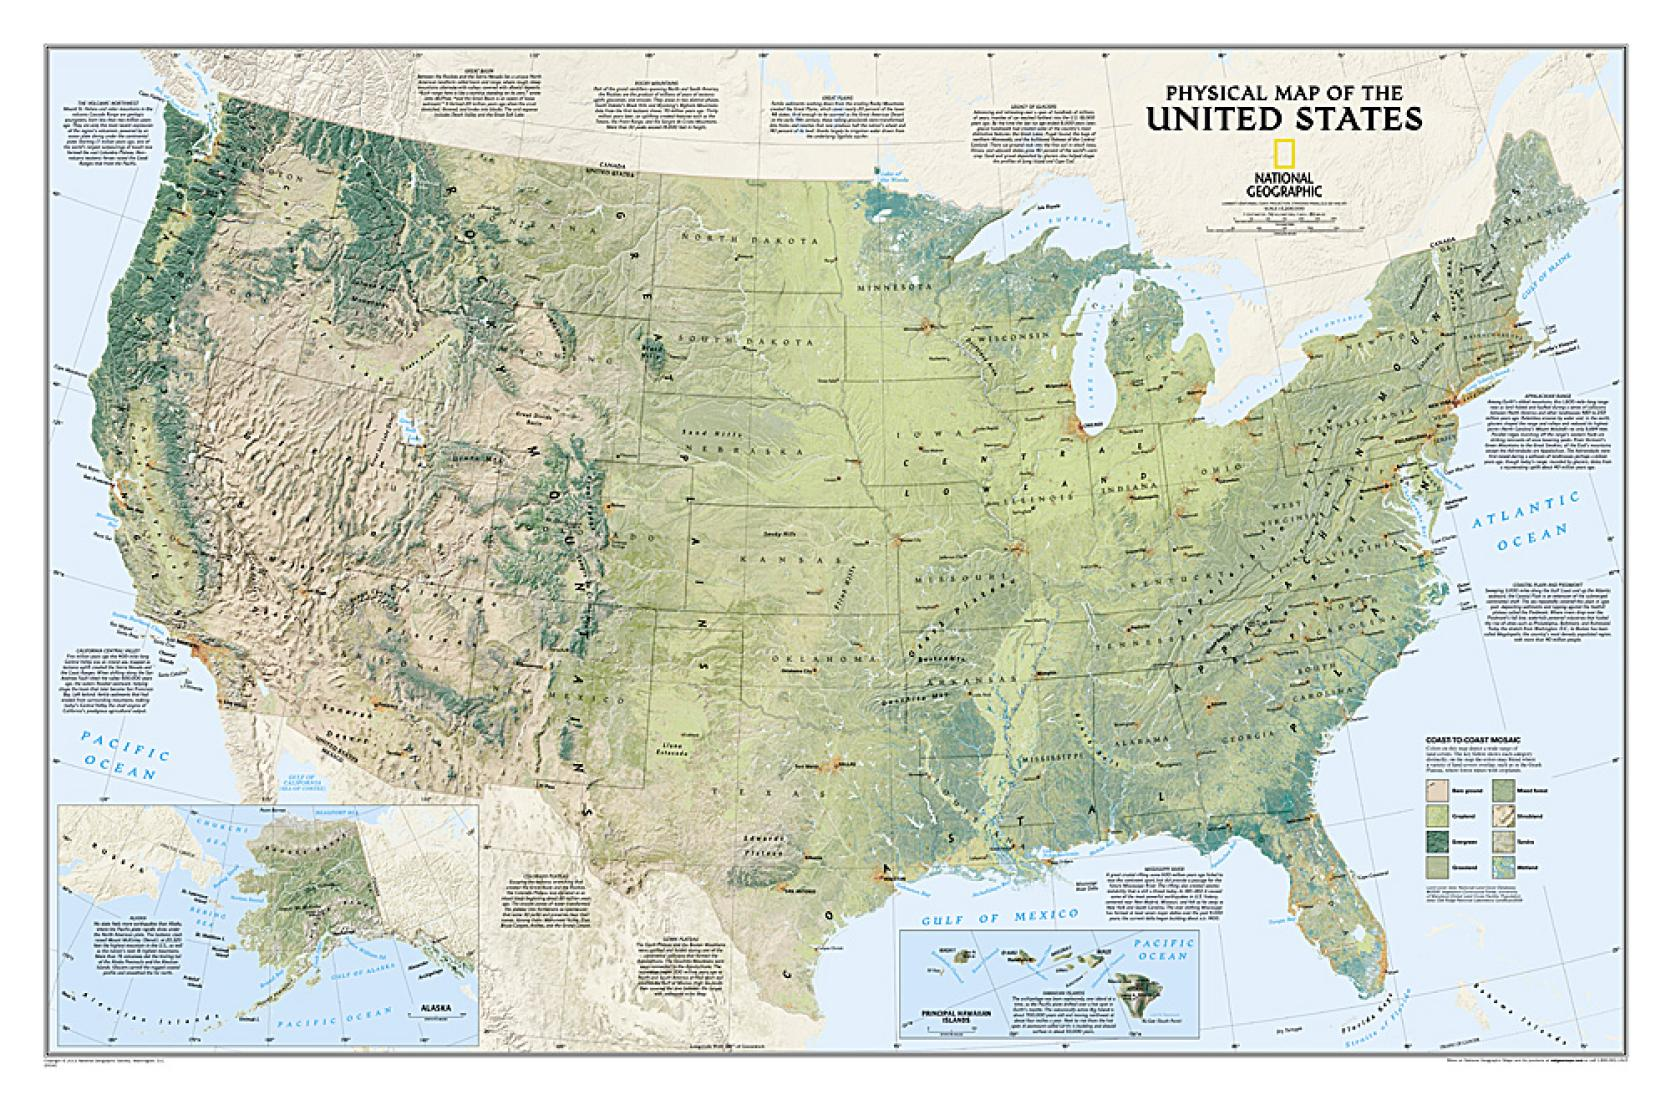 United States Physical Wall Map (38.25 x 25.25 inches) by National on genetic map of mexico, generic map of mexico, climate map of mexico, 15 geographical features of mexico, political map of mexico, natural map of mexico, geography of mexico, geophysical map of mexico, environmental map of mexico, map of cancun mexico, bing maps of mexico, blank map of mexico, tectonic map of mexico, demographic map of mexico, topological map of mexico, qualitative map of mexico, detailed map of mexico, territorial map of mexico, artistic map of mexico, geology map of mexico,